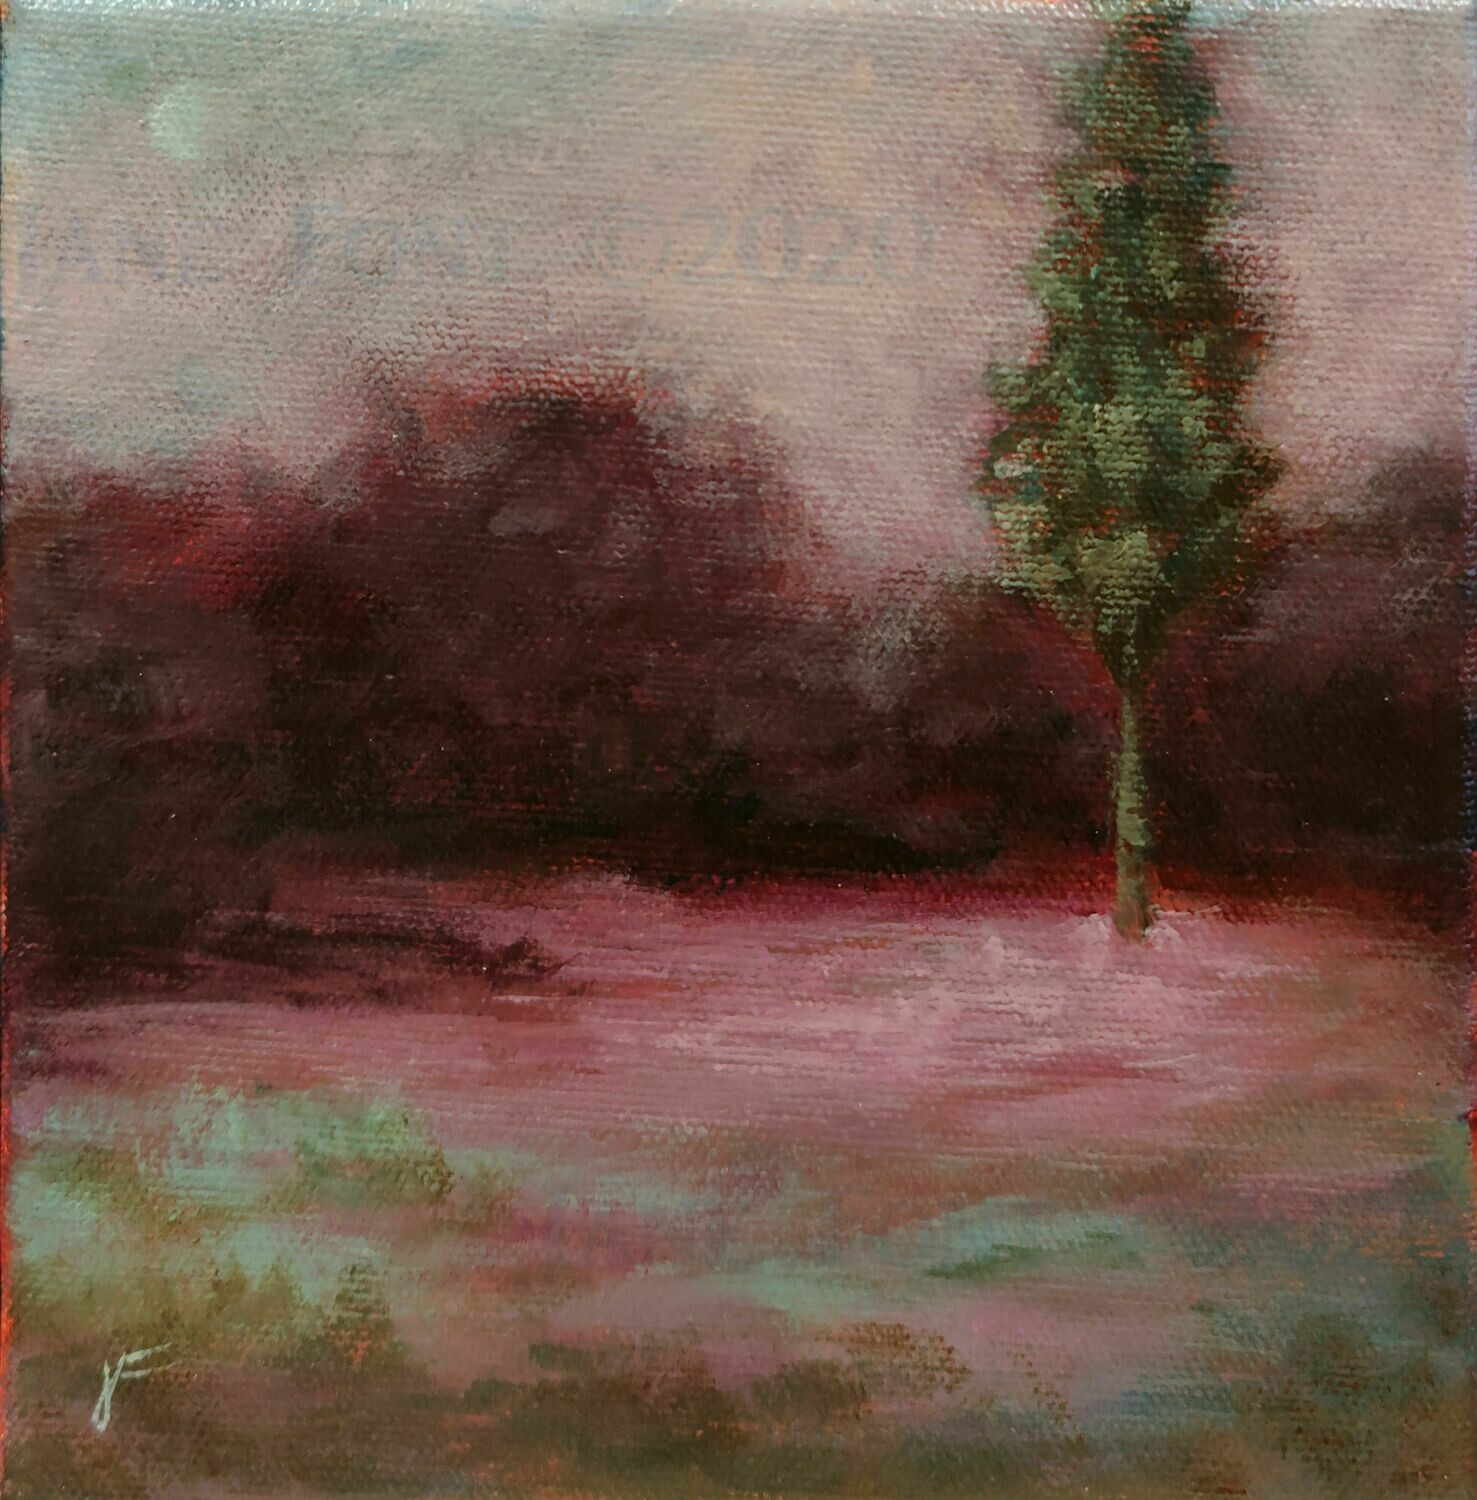 Late Song 1 - Original Acrylic Landscape by Jane Font